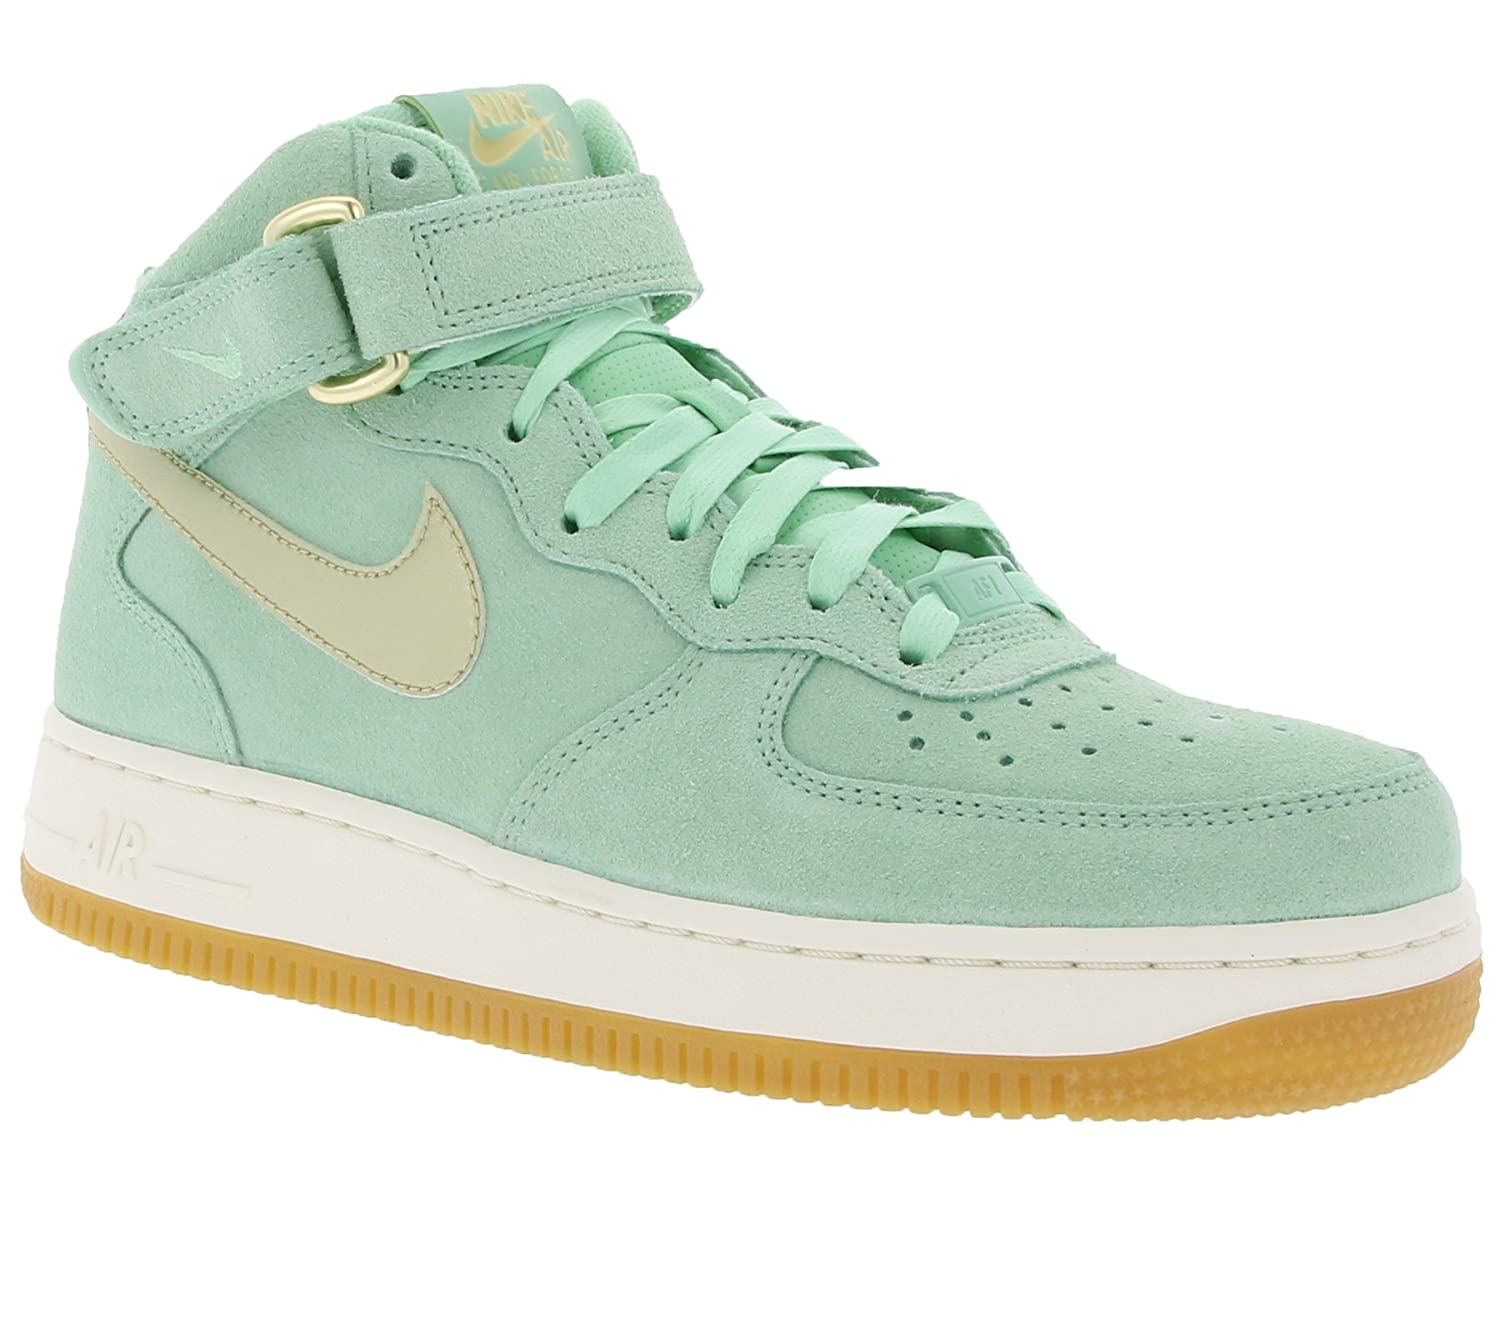 new styles bfe3e 99a0e NIKE Women s 818596-300 Low-Top